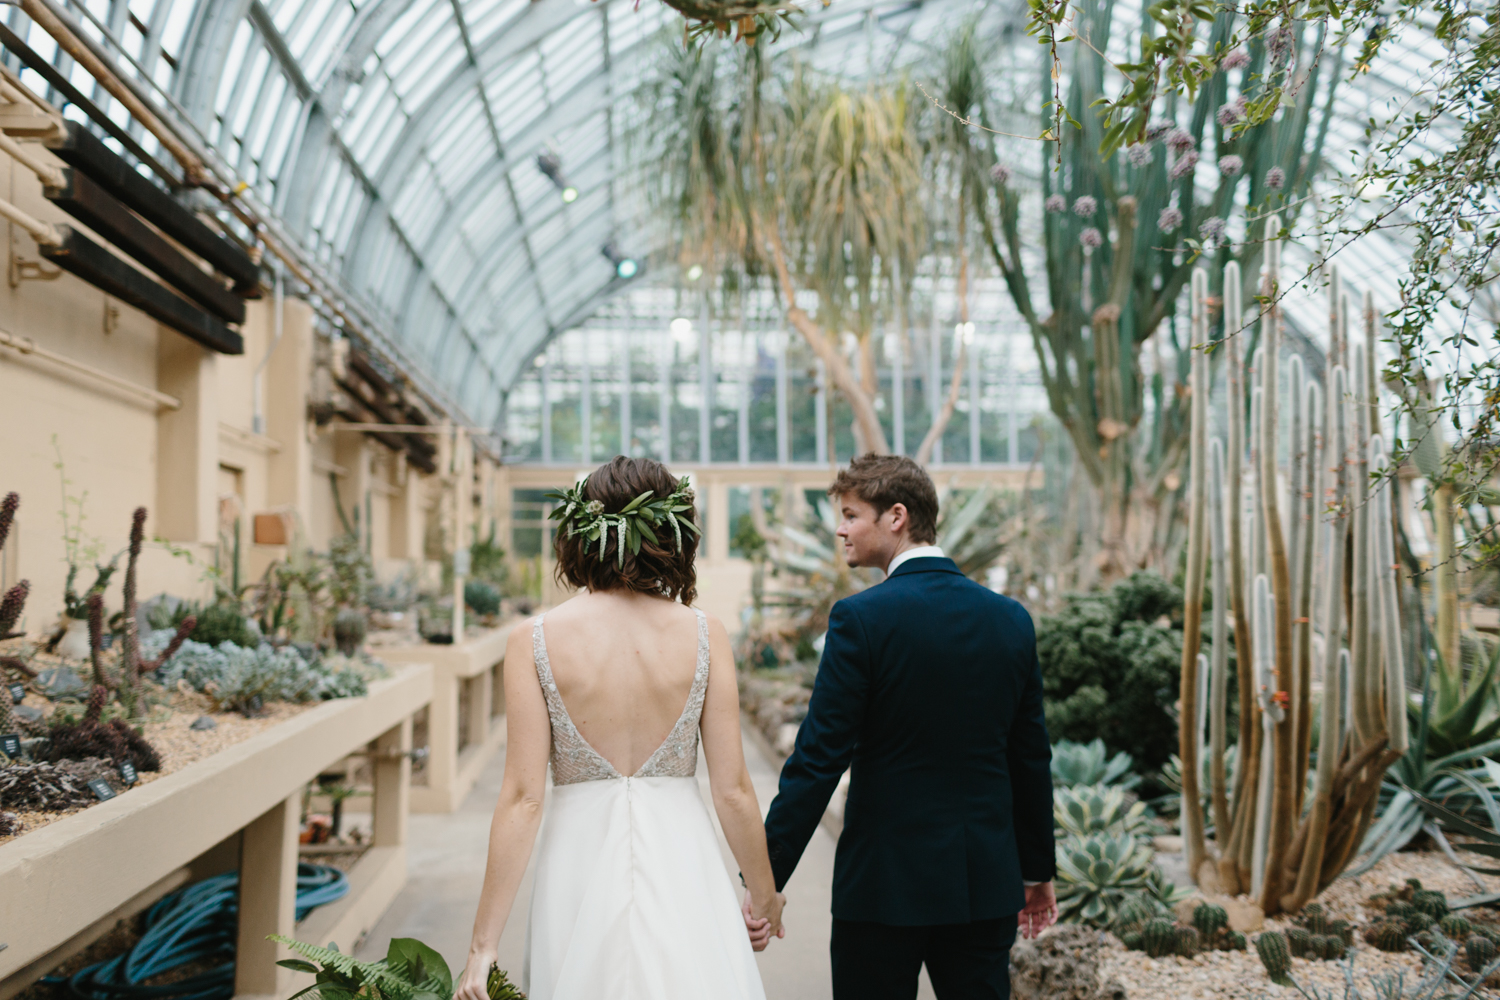 Chicago Garfield Park Conservatory Wedding by Northern Michigan Photographer Mae Stier-048.jpg